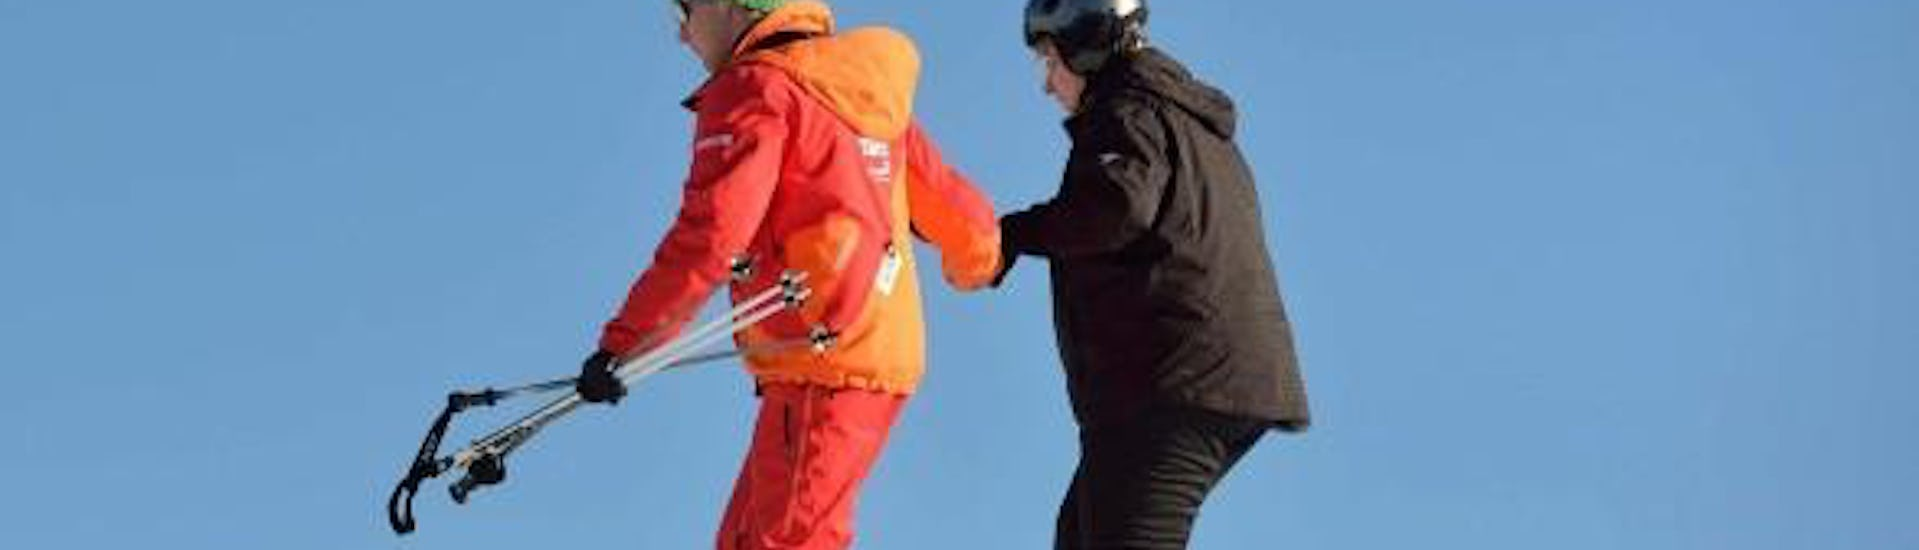 Ski Instructor Private - All Ages & Levels